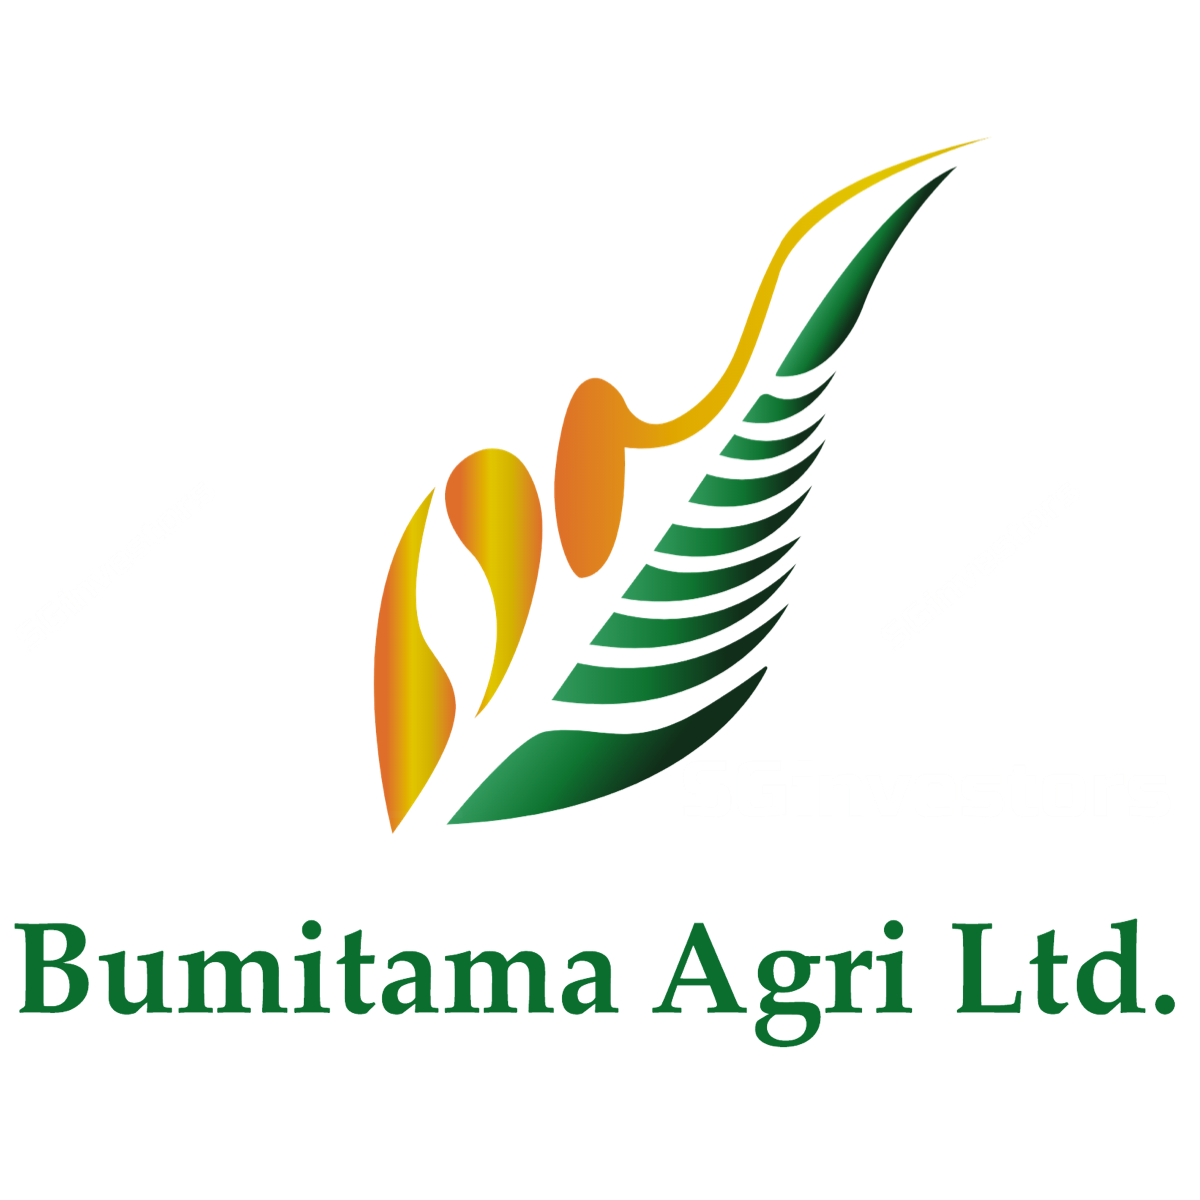 Bumitama Agri (BAL SP) - Maybank Kim Eng 2018-02-27: Too Cheap To Ignore